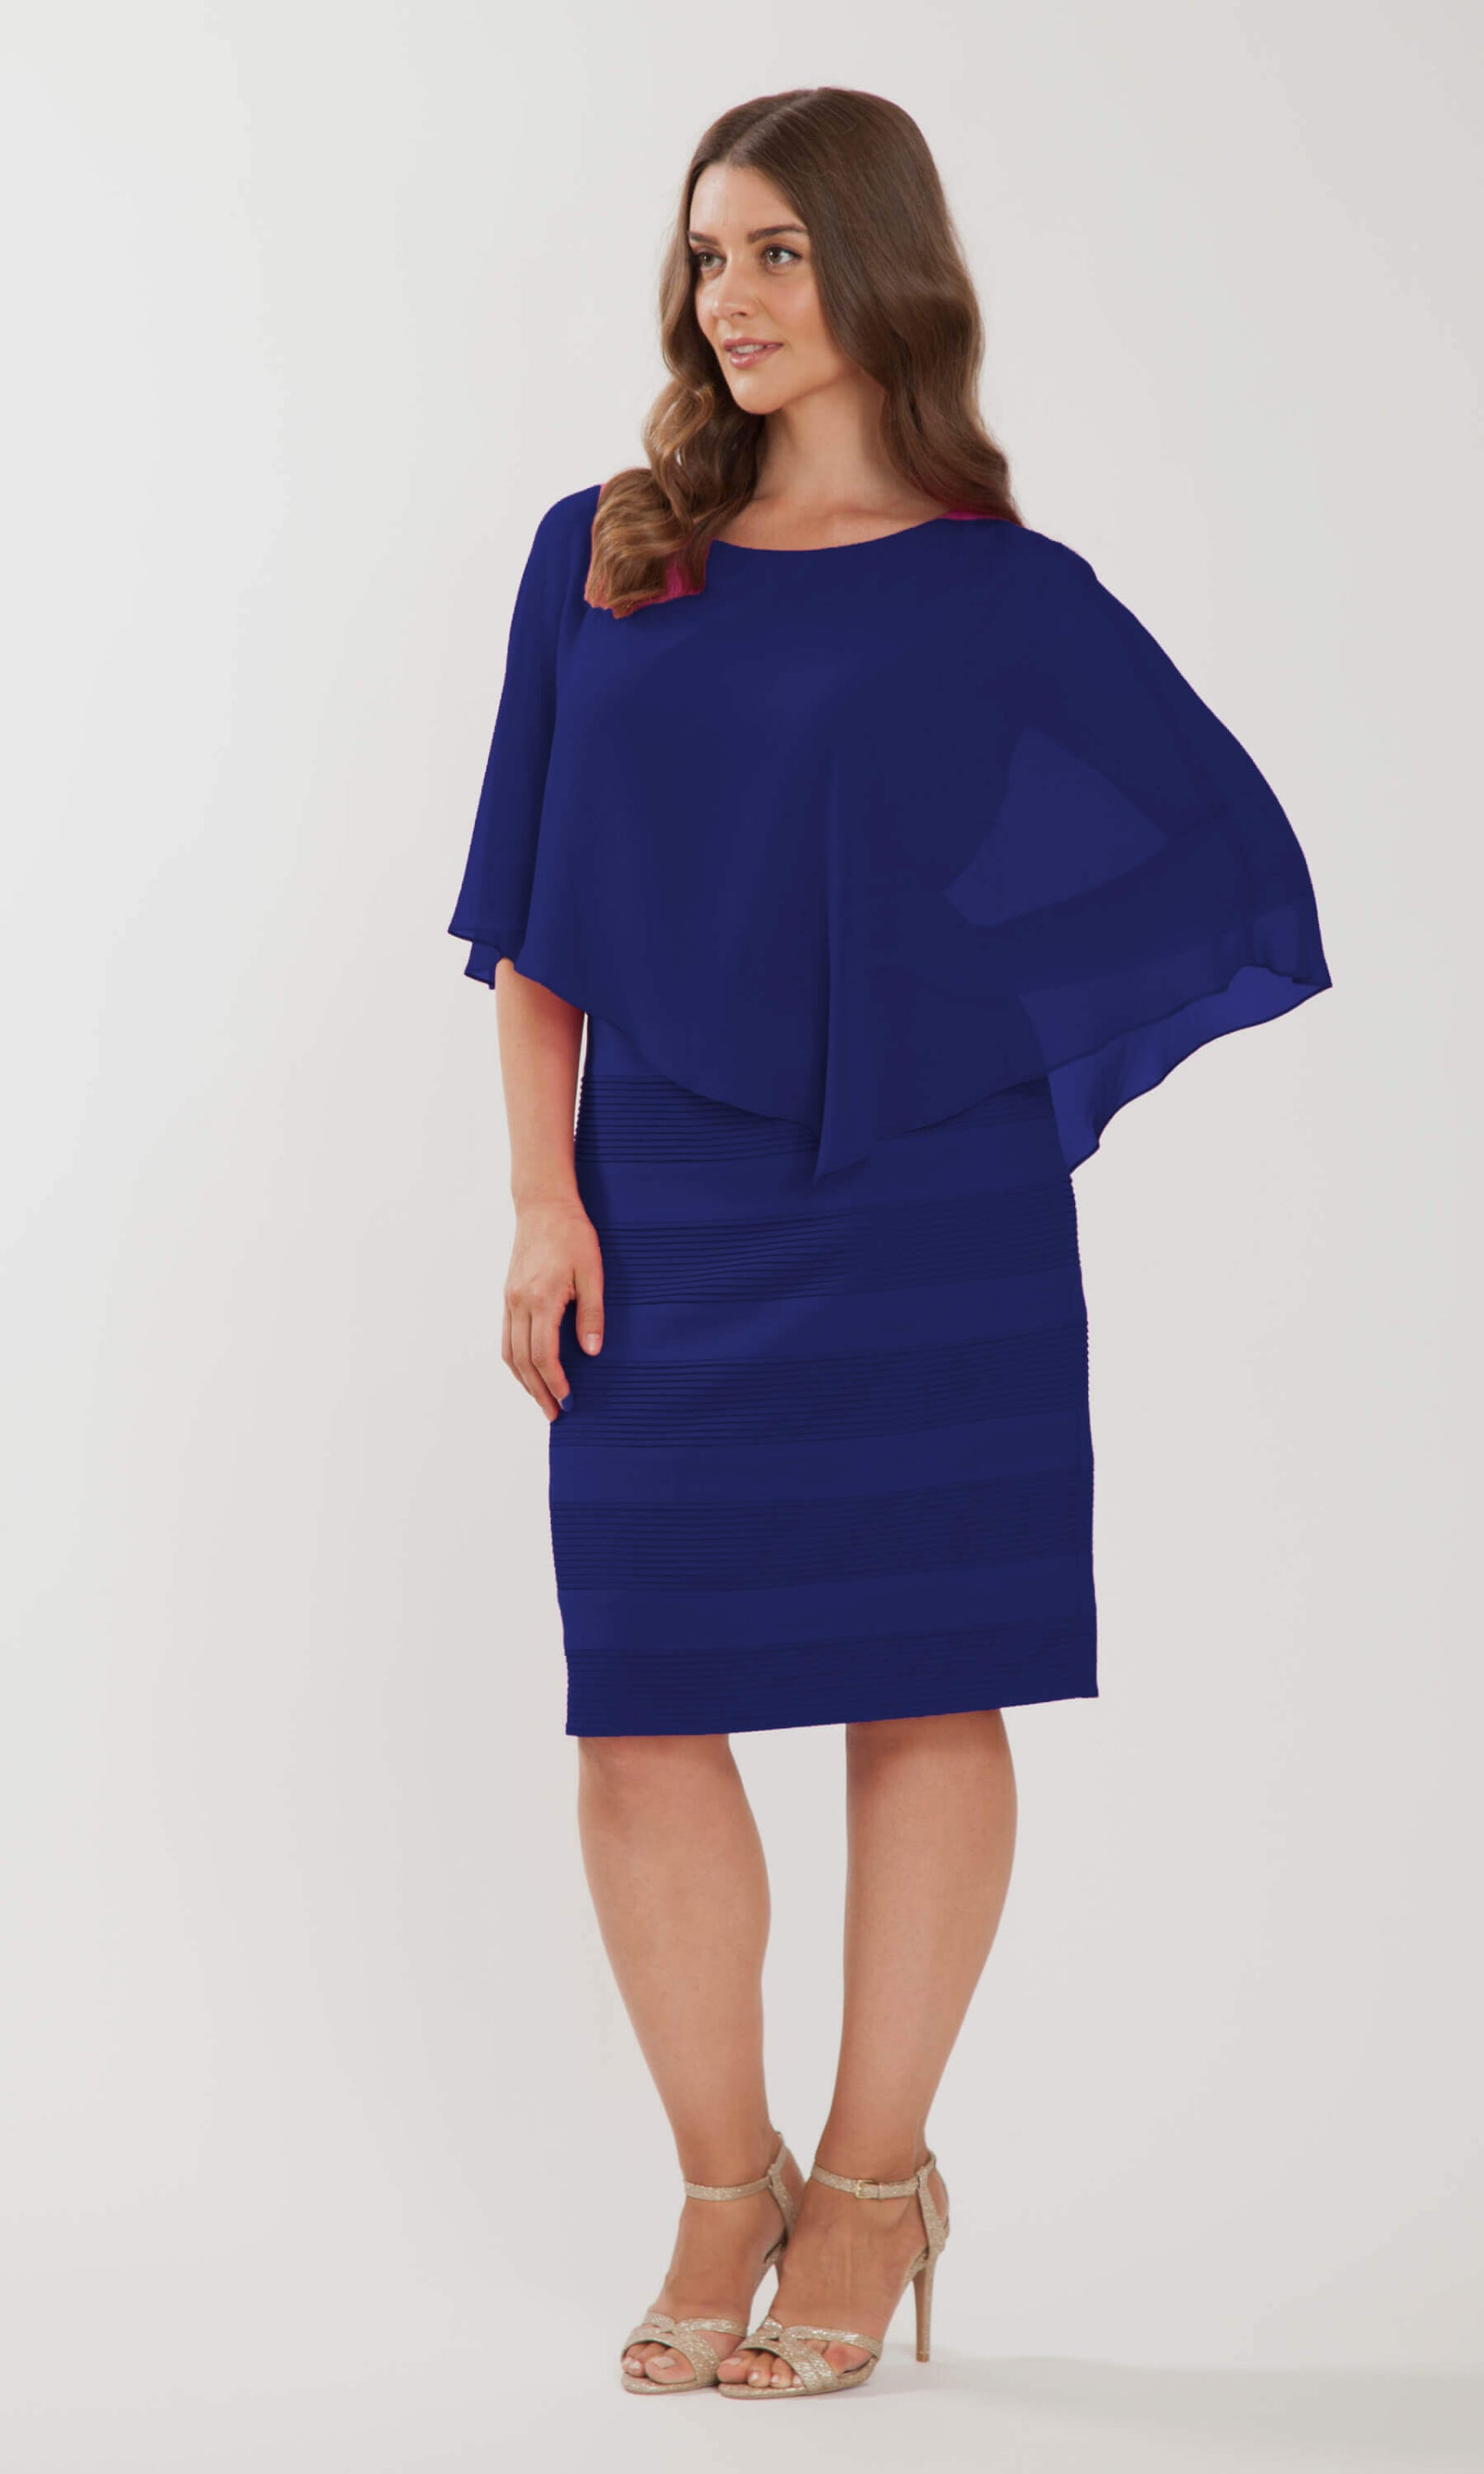 102 Royal Blue Personal Choice Dress With Floaty Cape